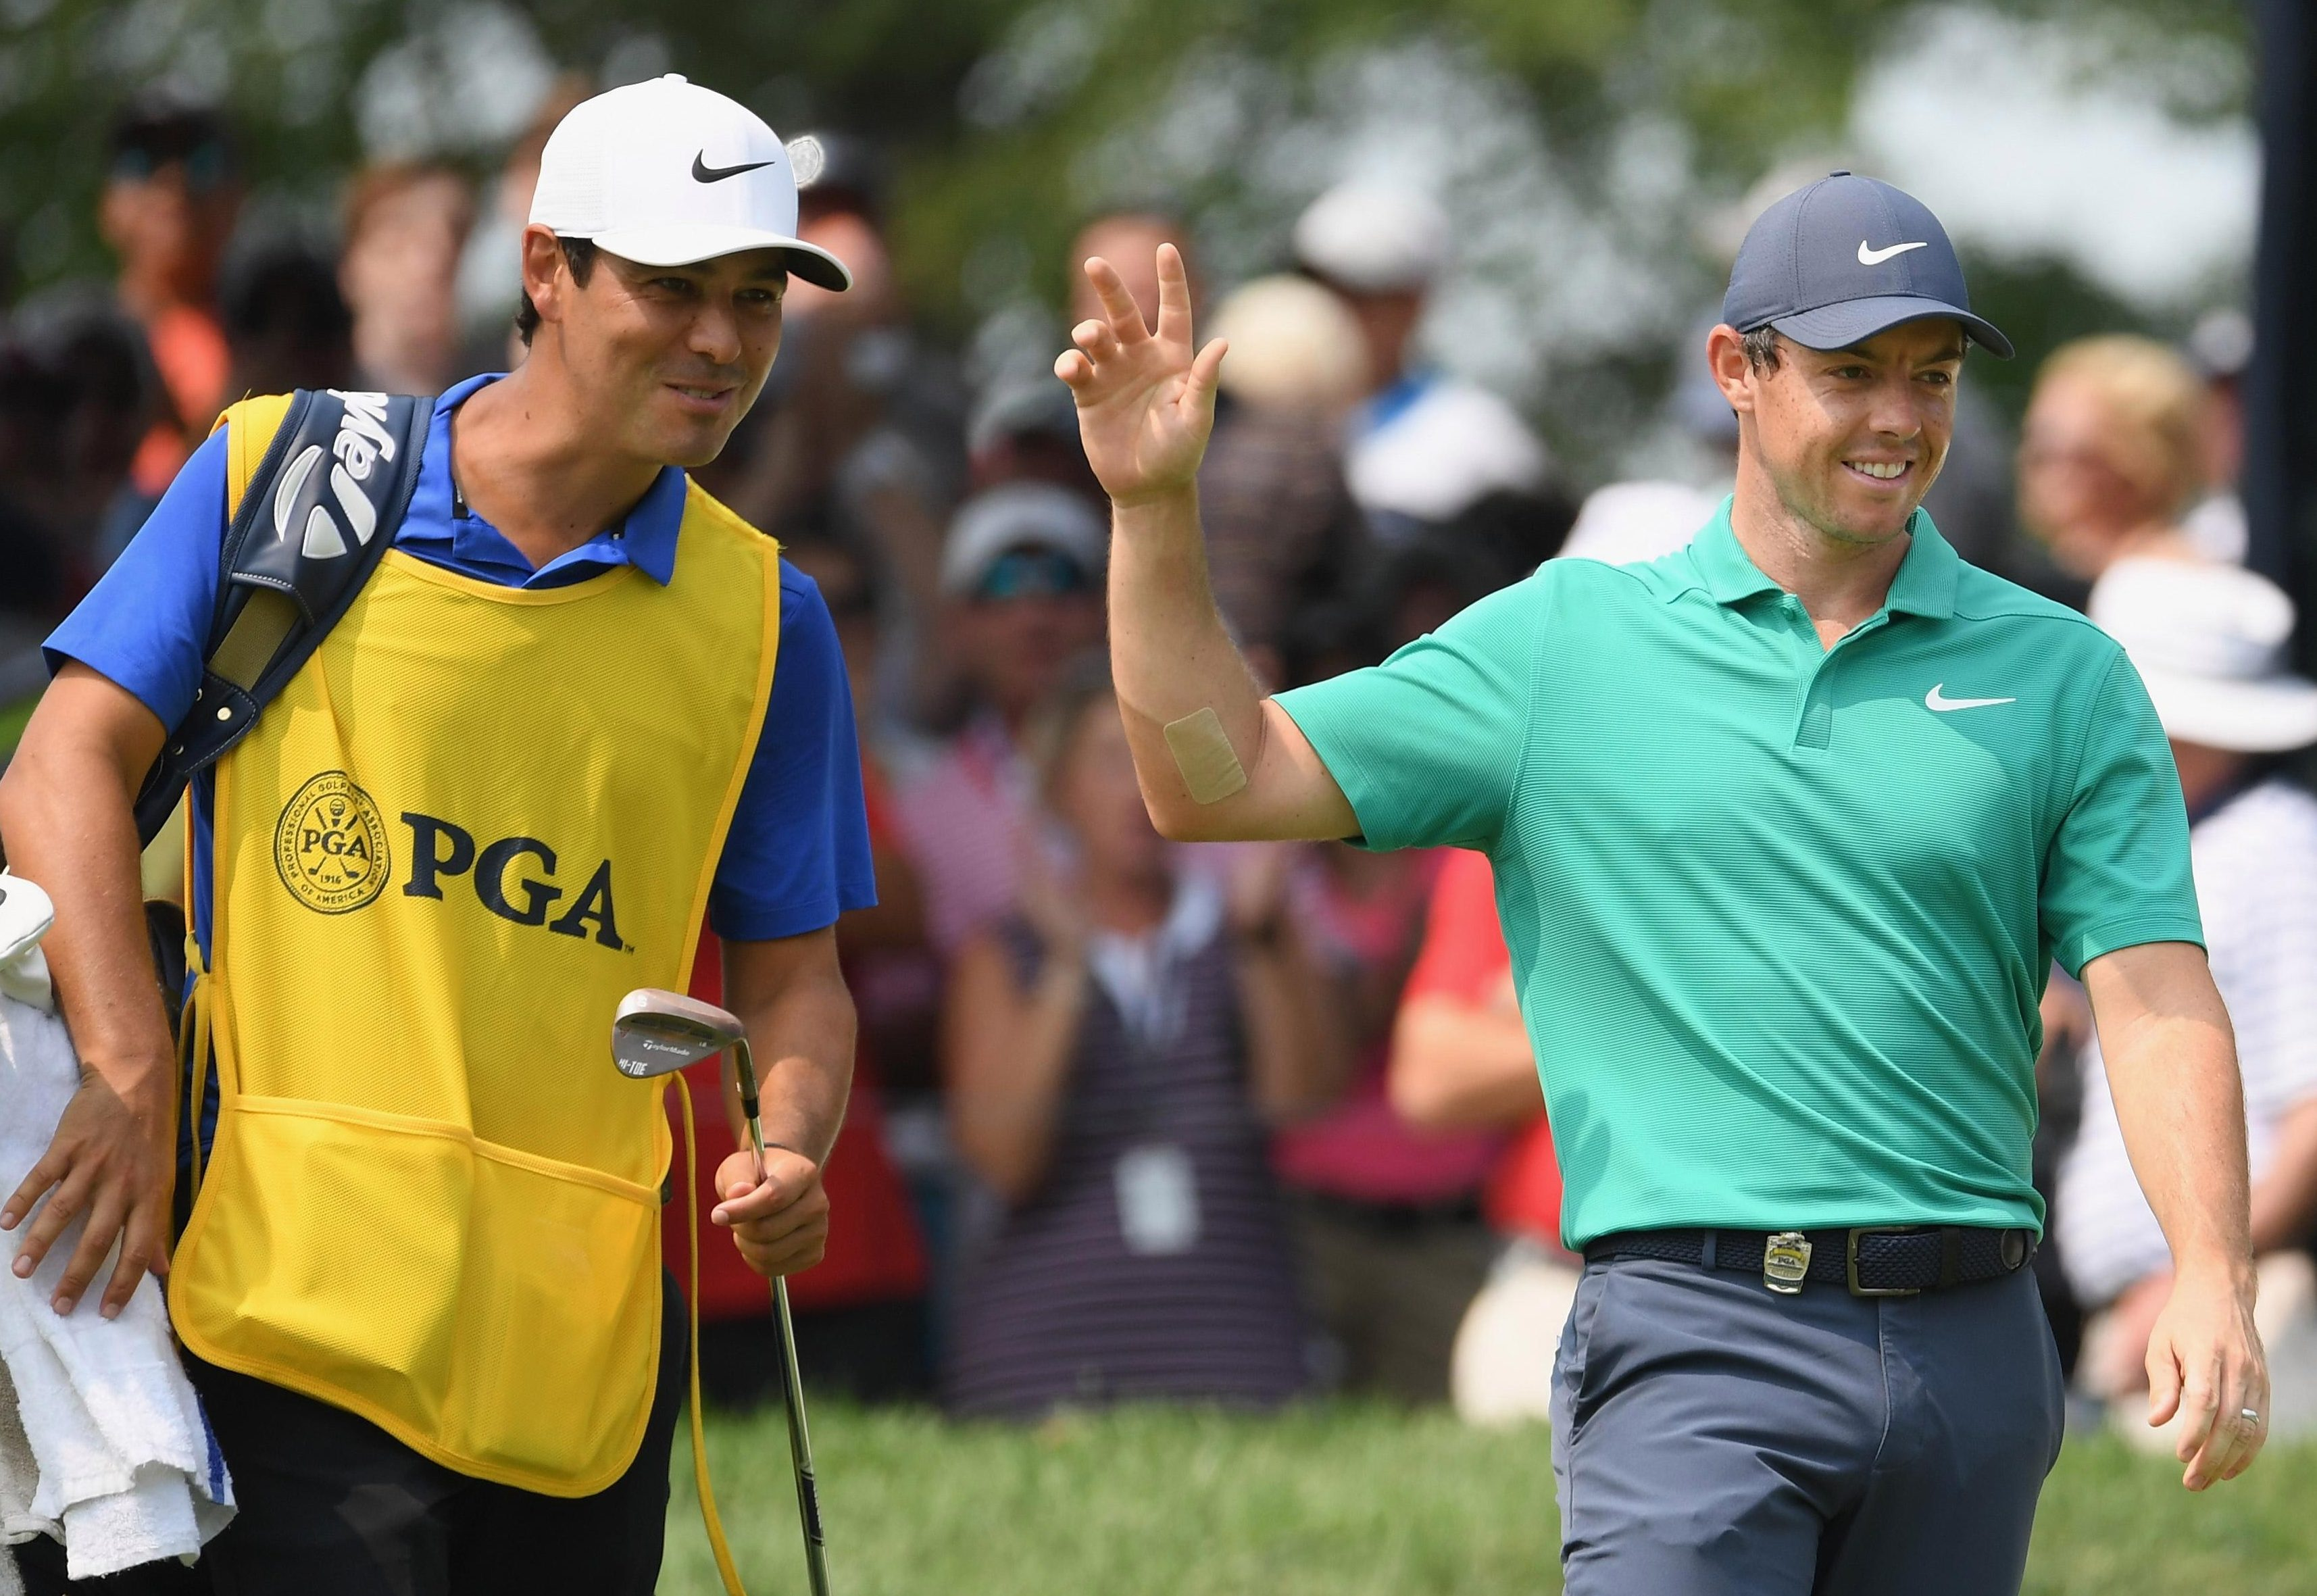 Rory McIlroy celebrates with caddy Harry Diamond